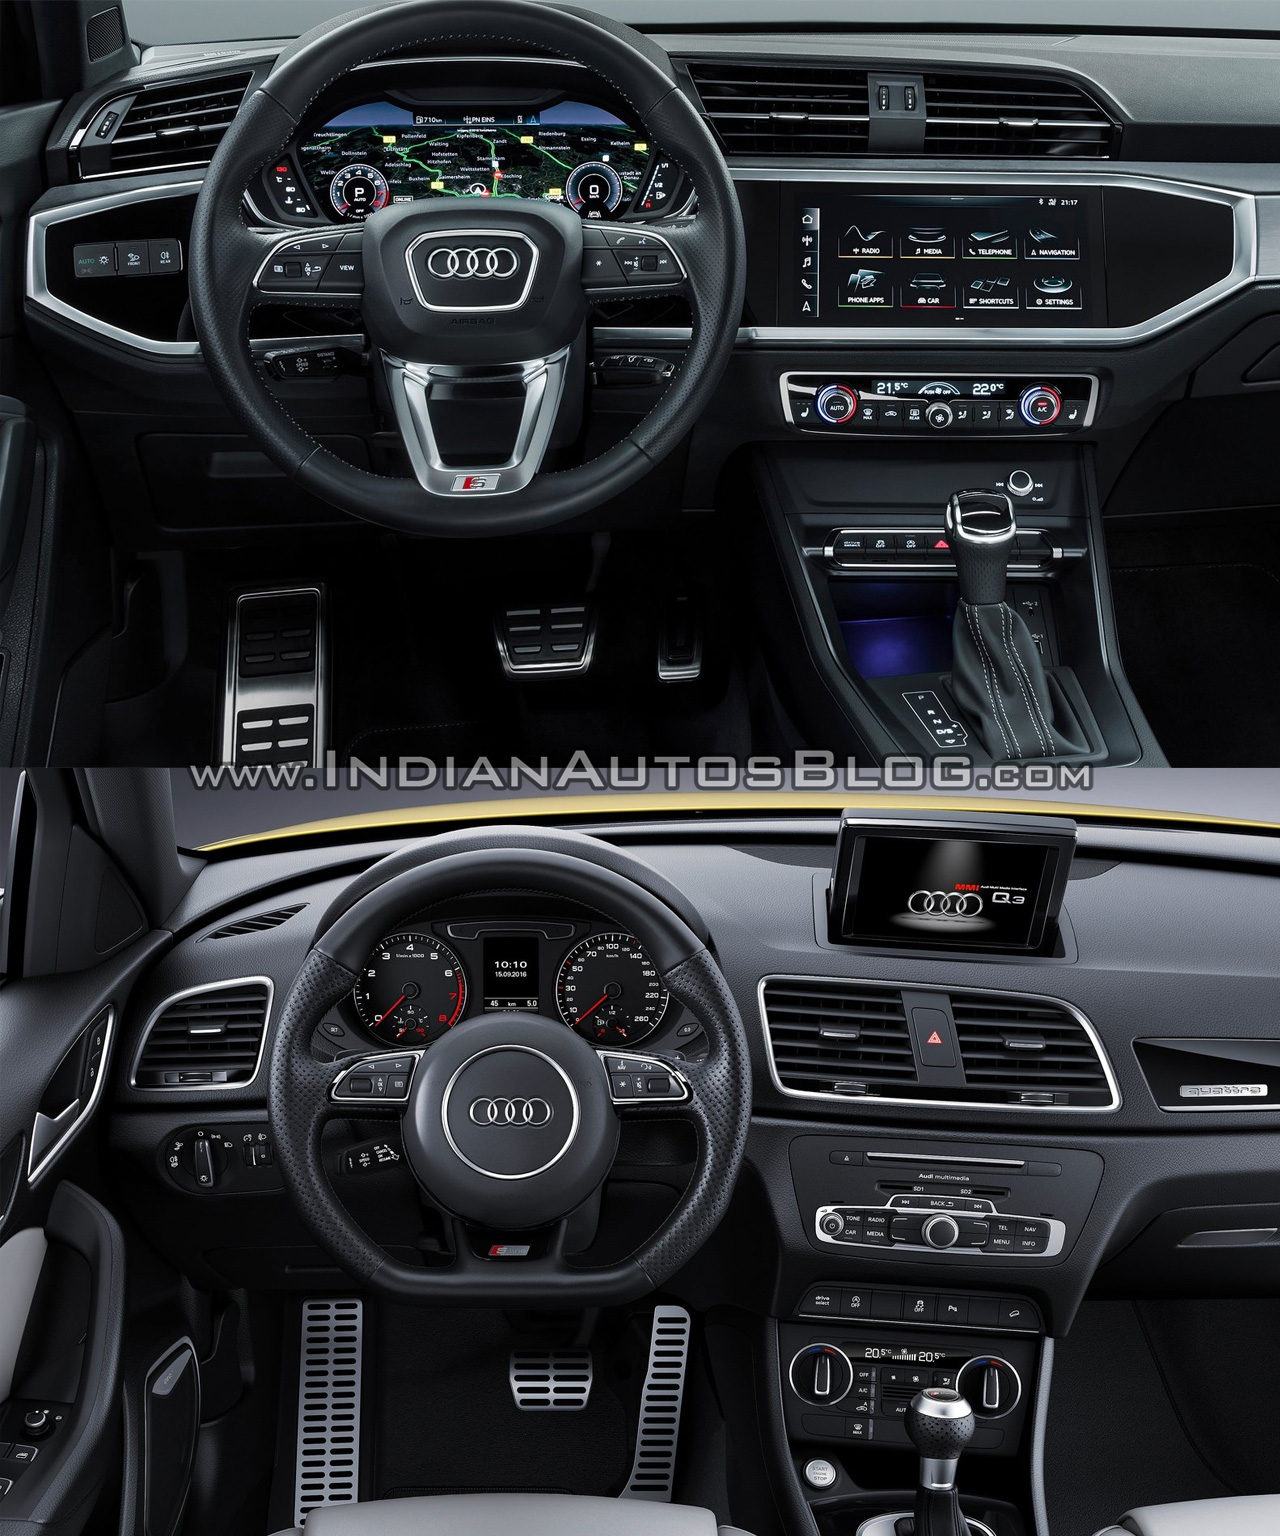 2019 Audi Q3 Vs 2015 Audi Q3 Old Vs New